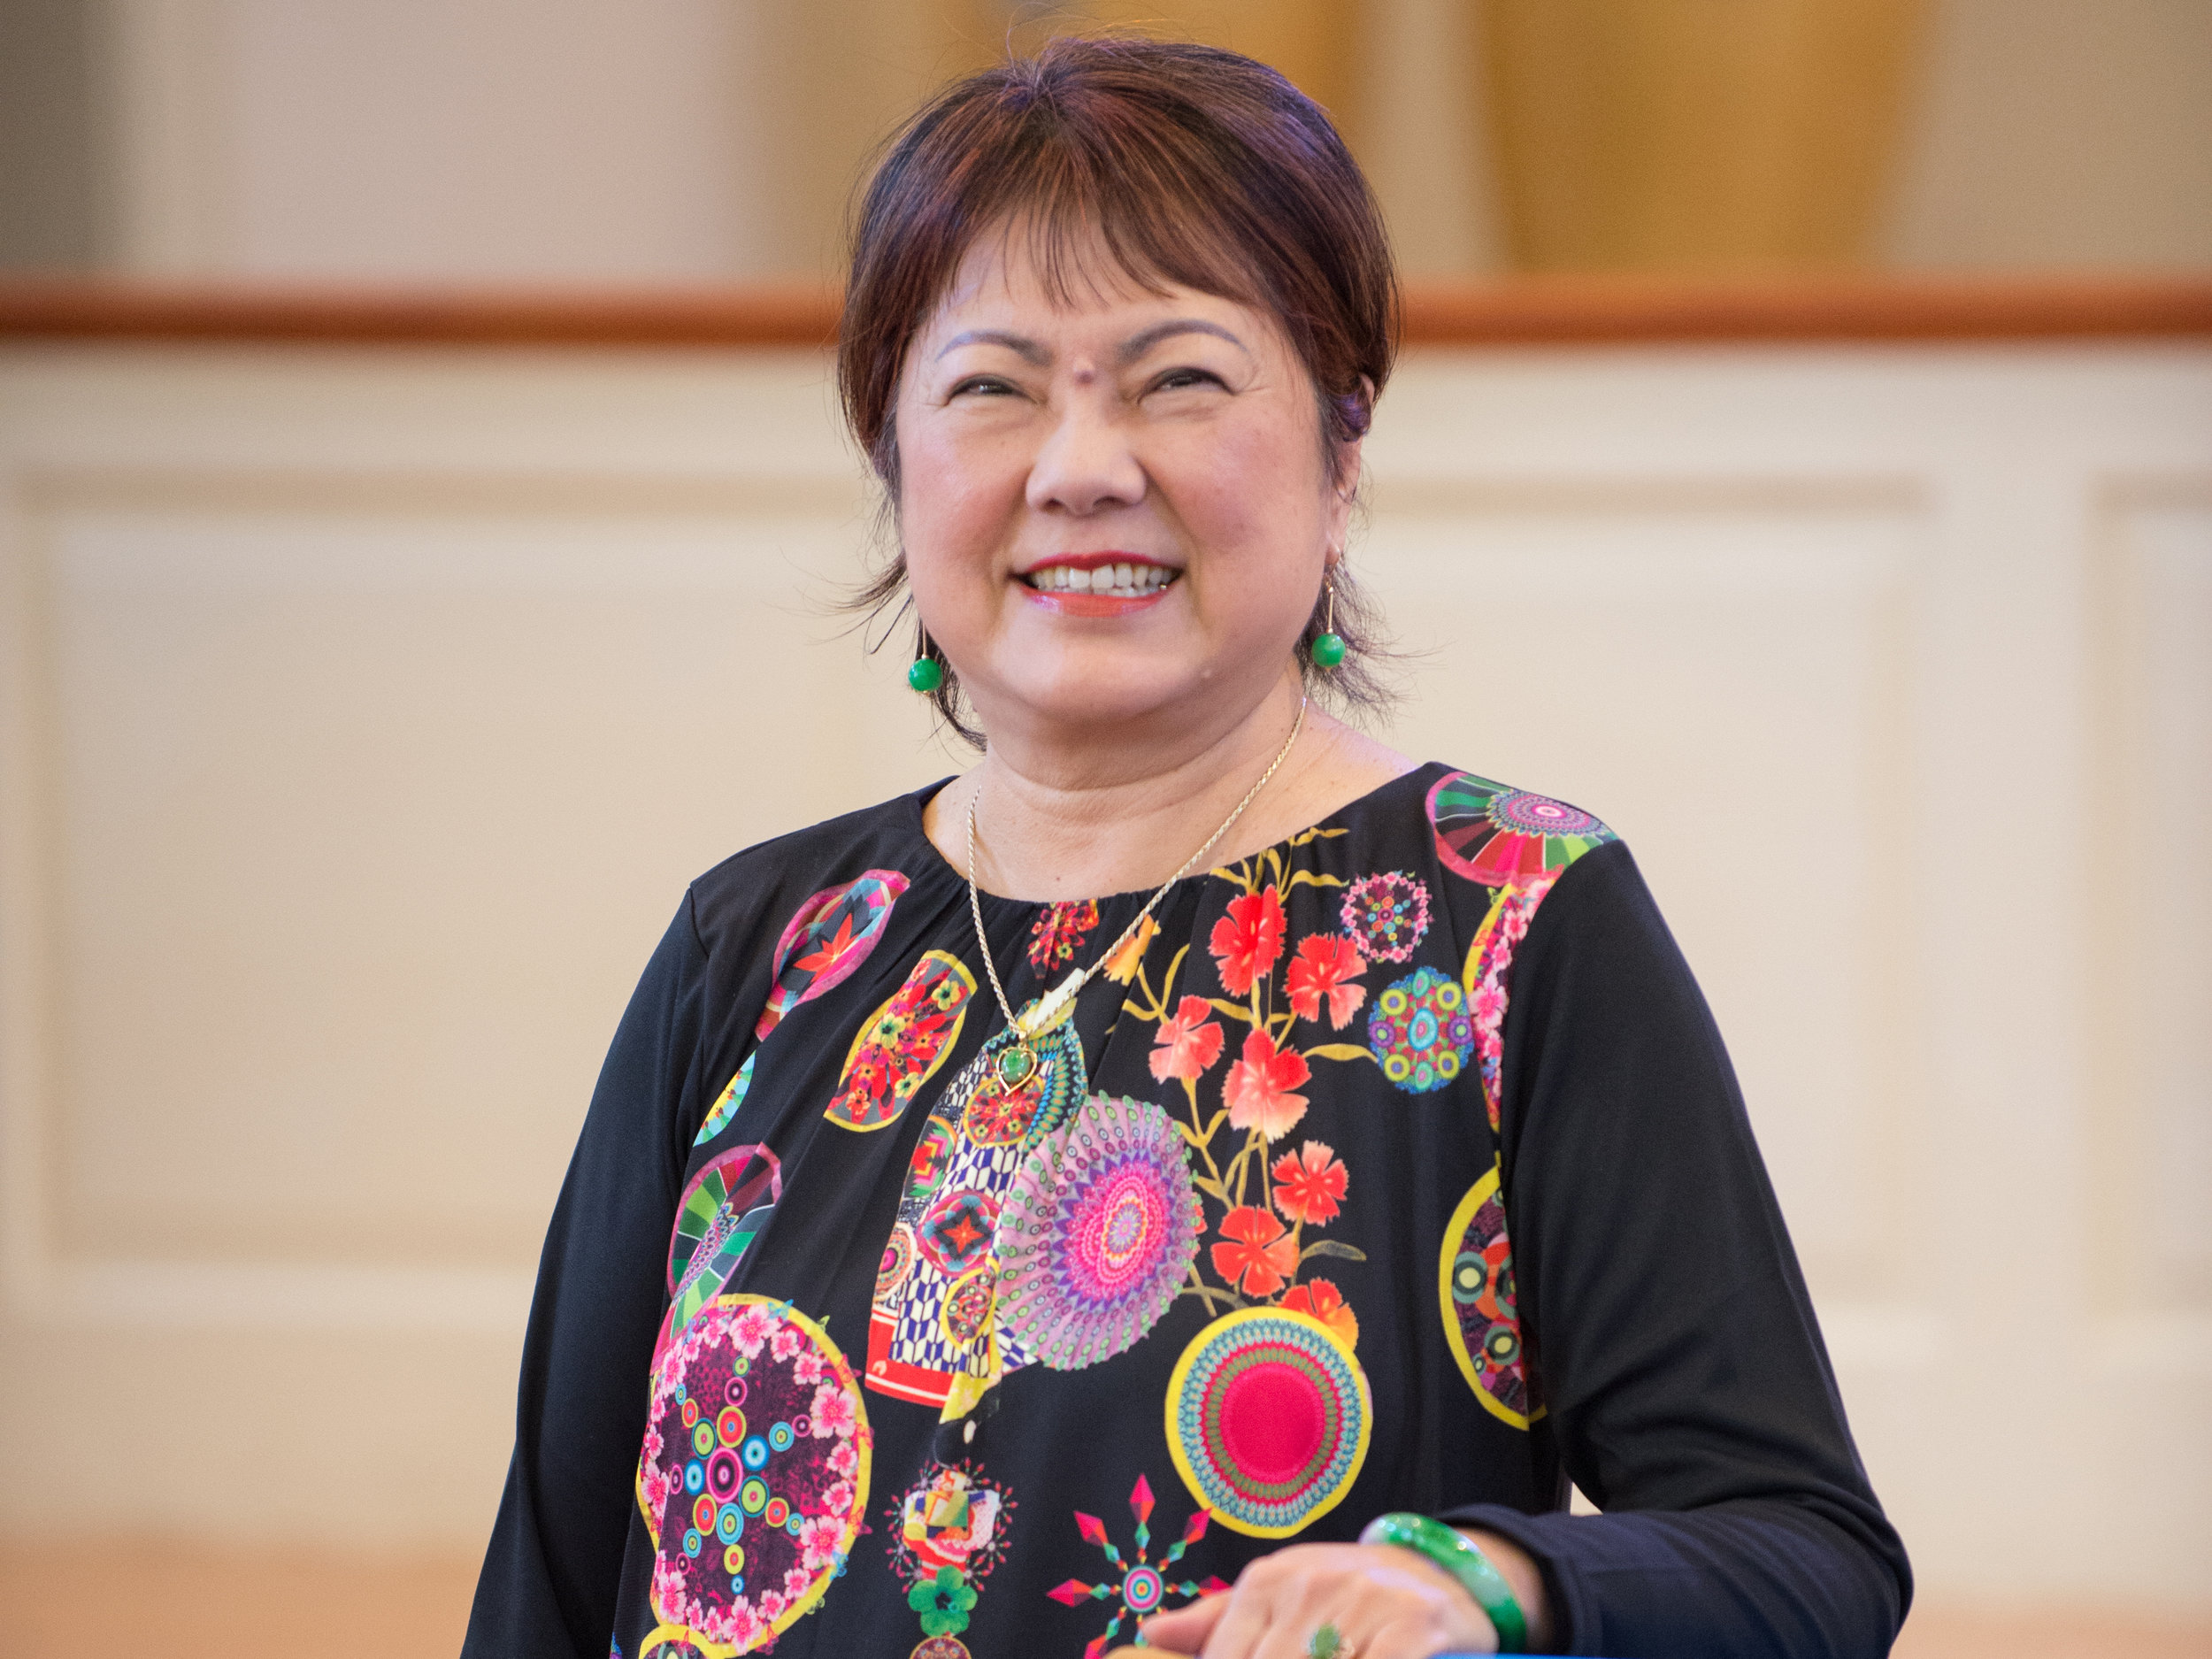 Jane Pan, Pastor of the Chinese Baptist Church - chinese@foresthills.org